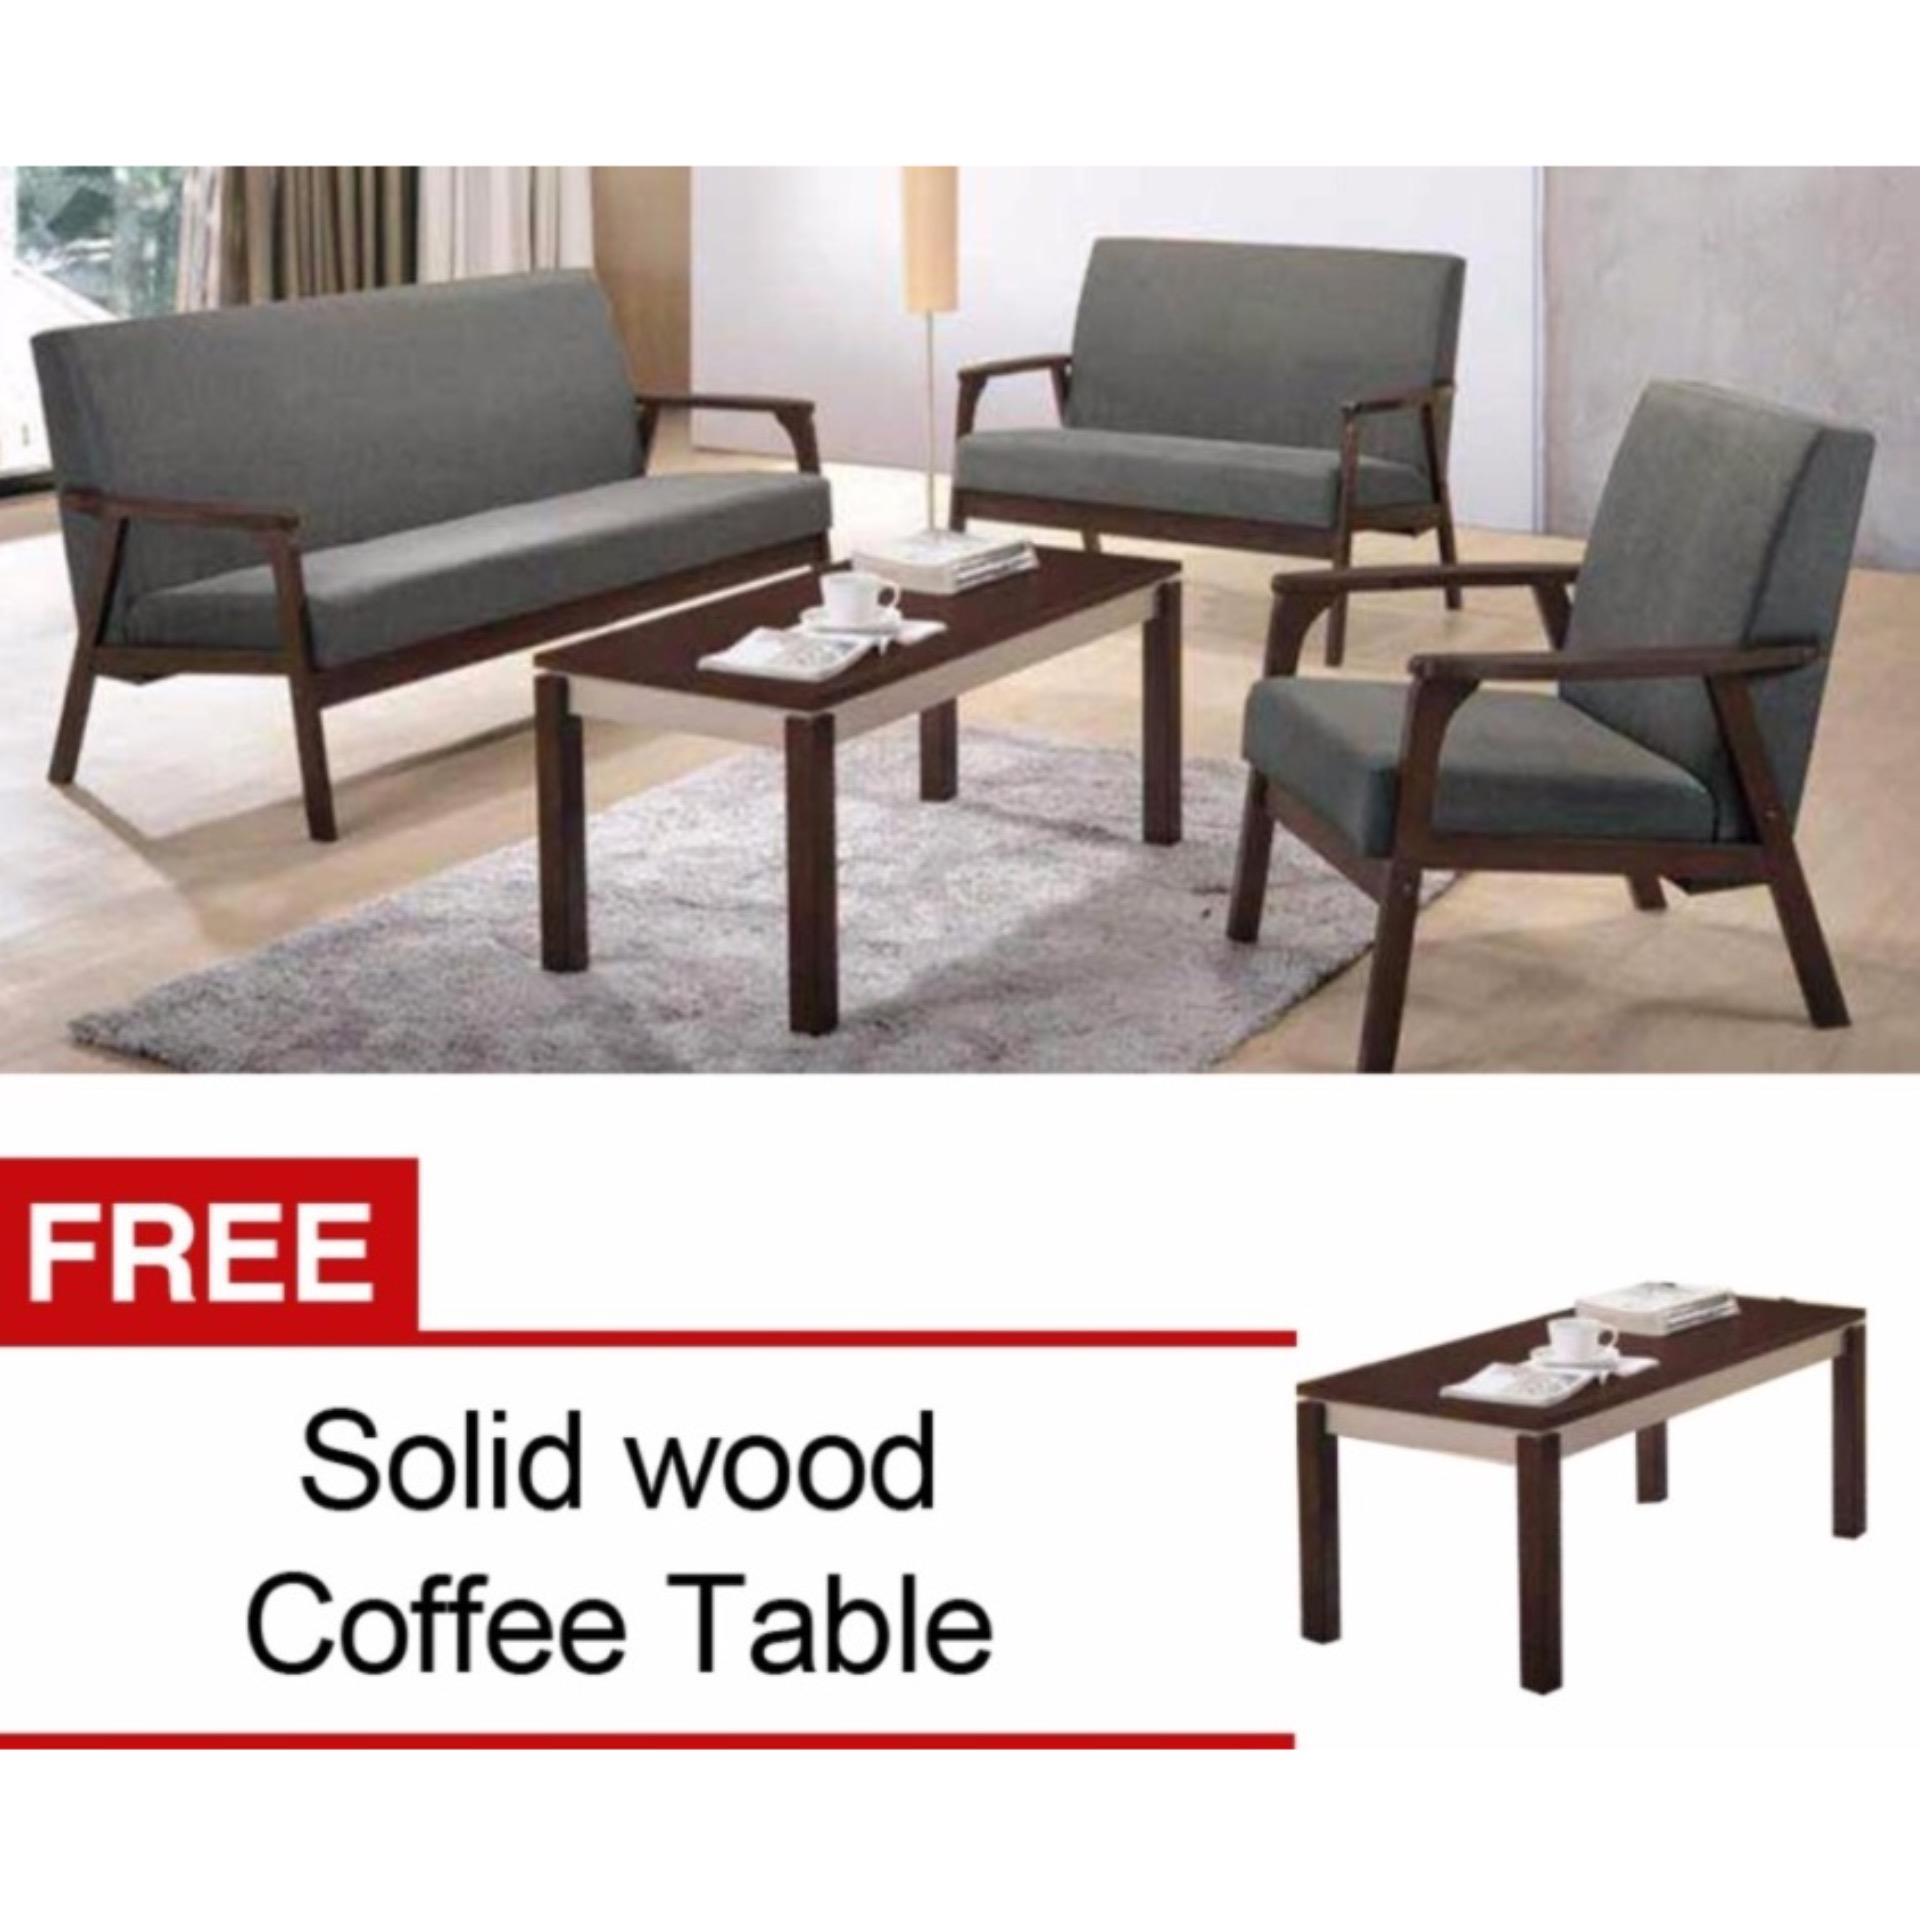 Solid Wood 123 Fabric Sofa Set Wit End 592021 1200 Am